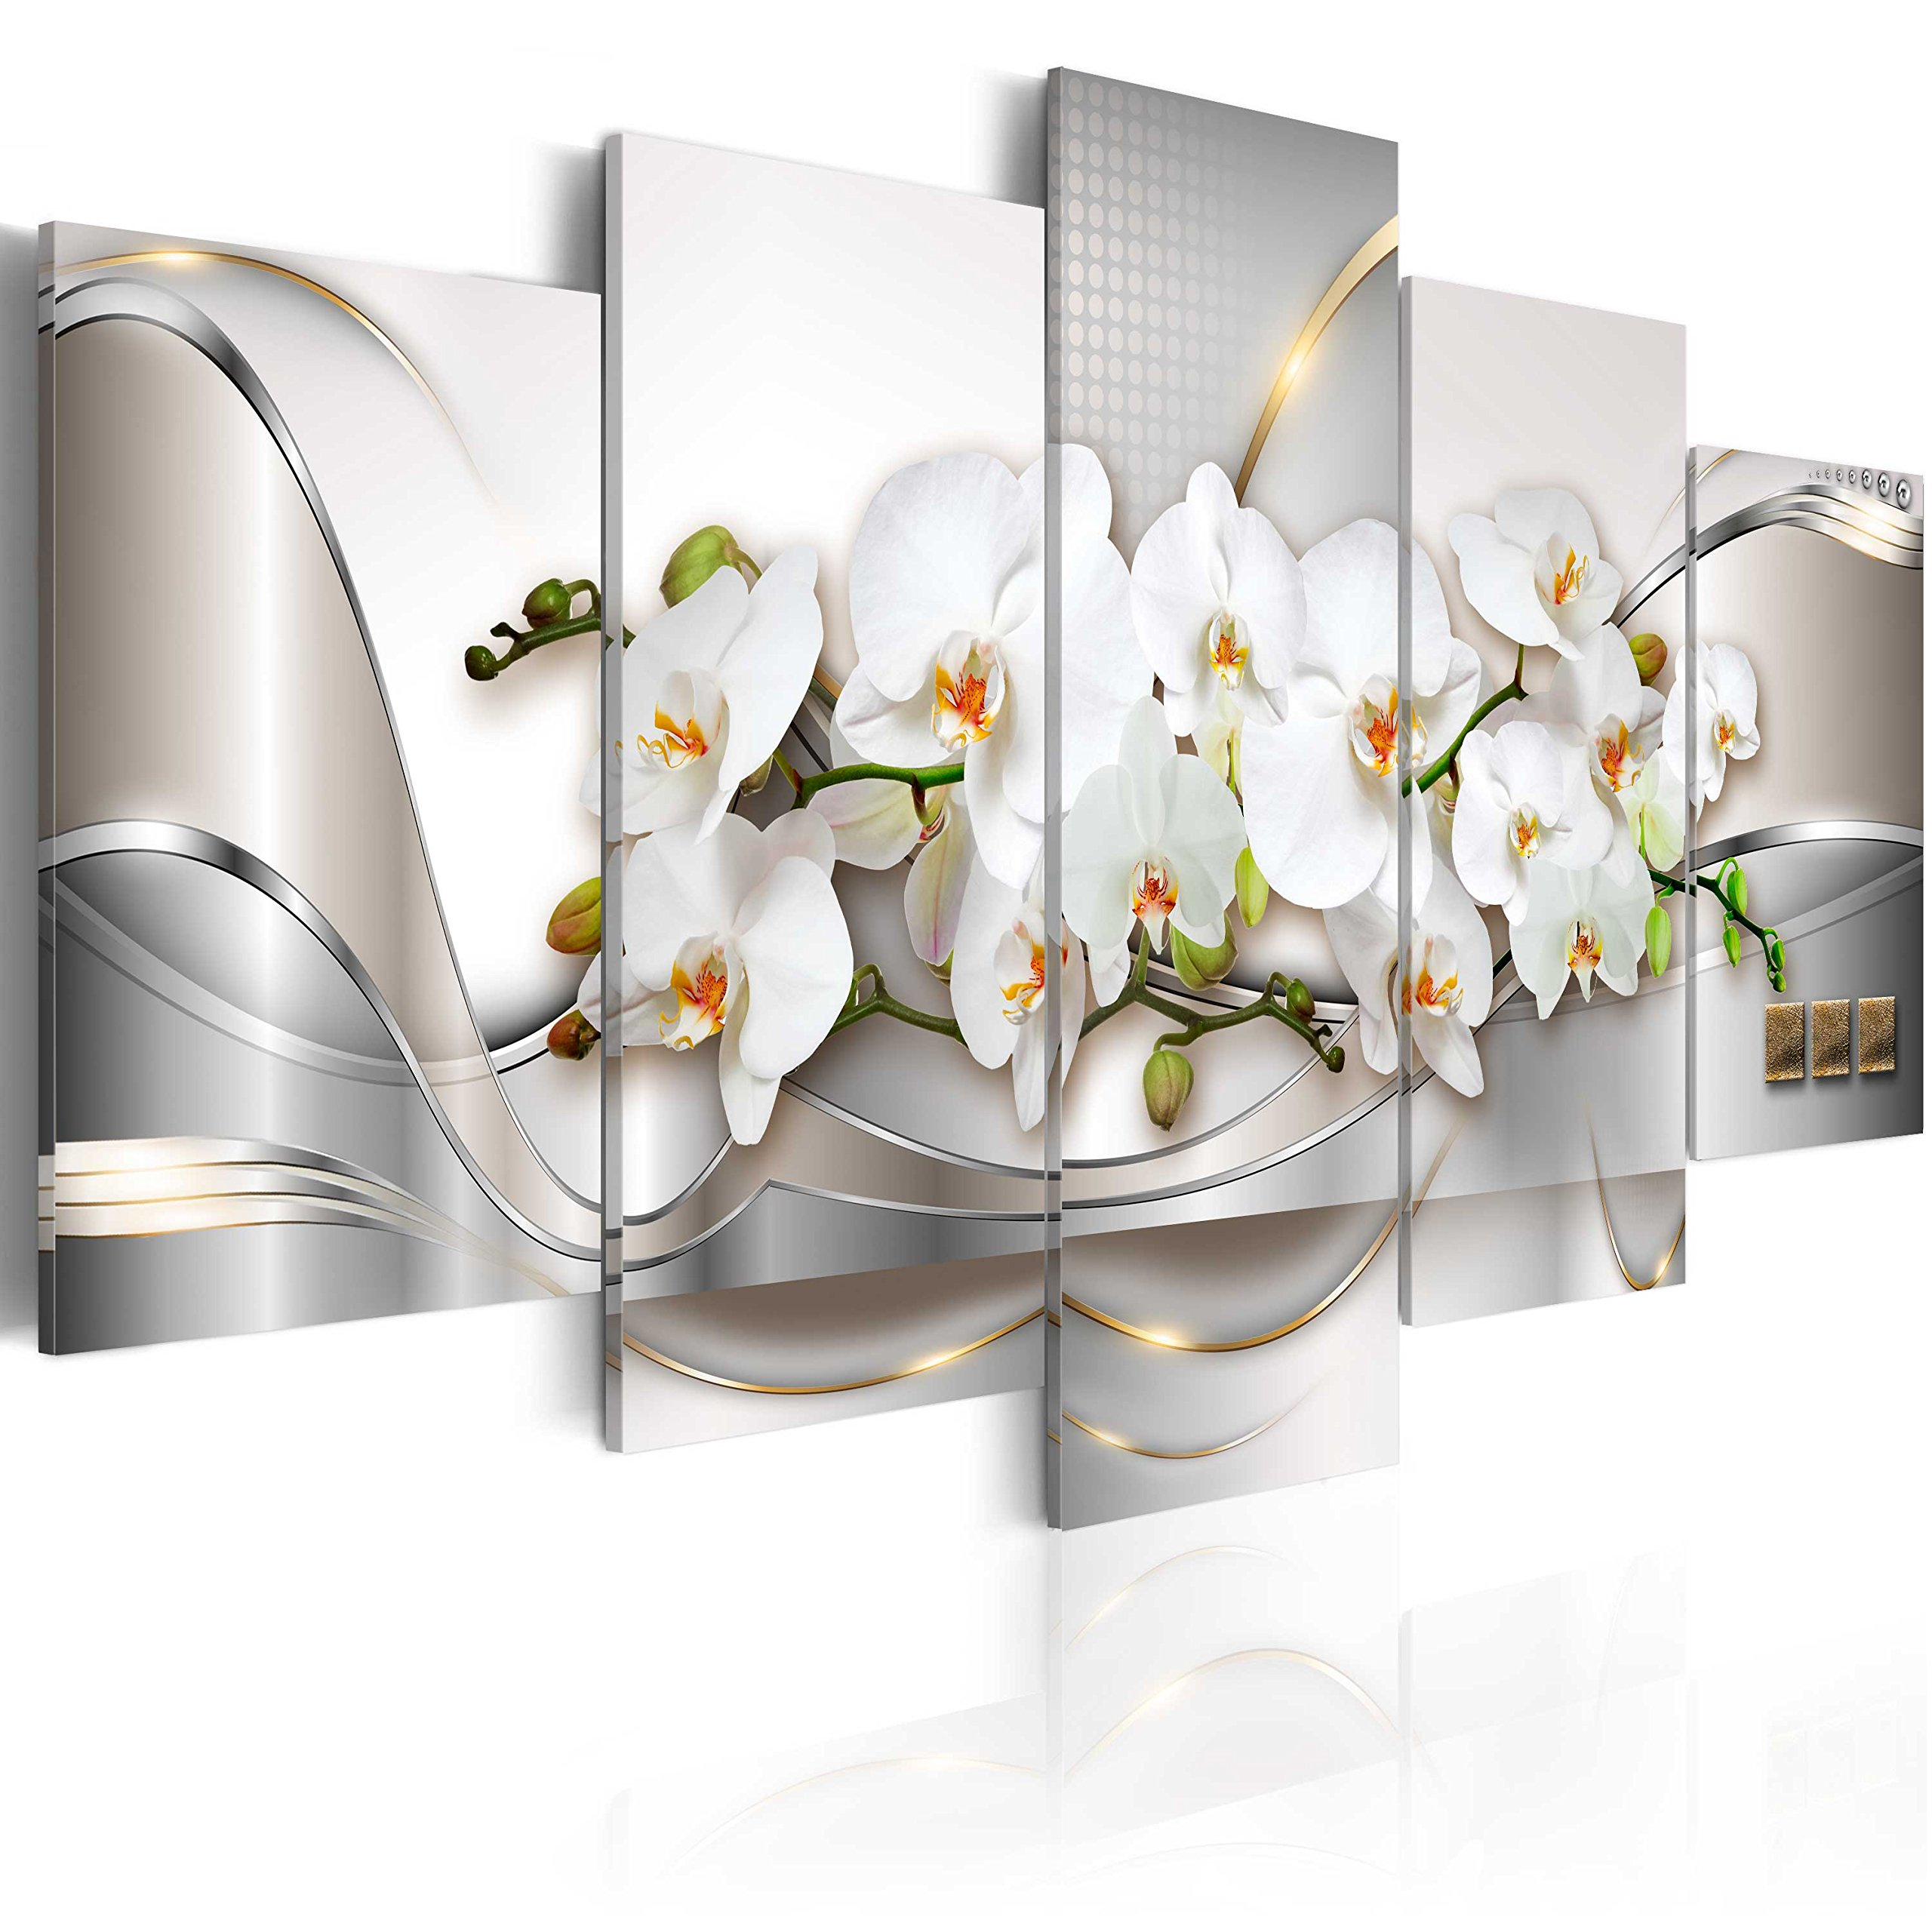 """Everlands Art Extra Huge 5 Pieces Butterfly Orchid Flowers Canvas Print Wall Art White Floral Painting Decor Oversize Picture for Living Stretched Framed Artwork (80""""x 40"""", Ocean of Innocence)"""